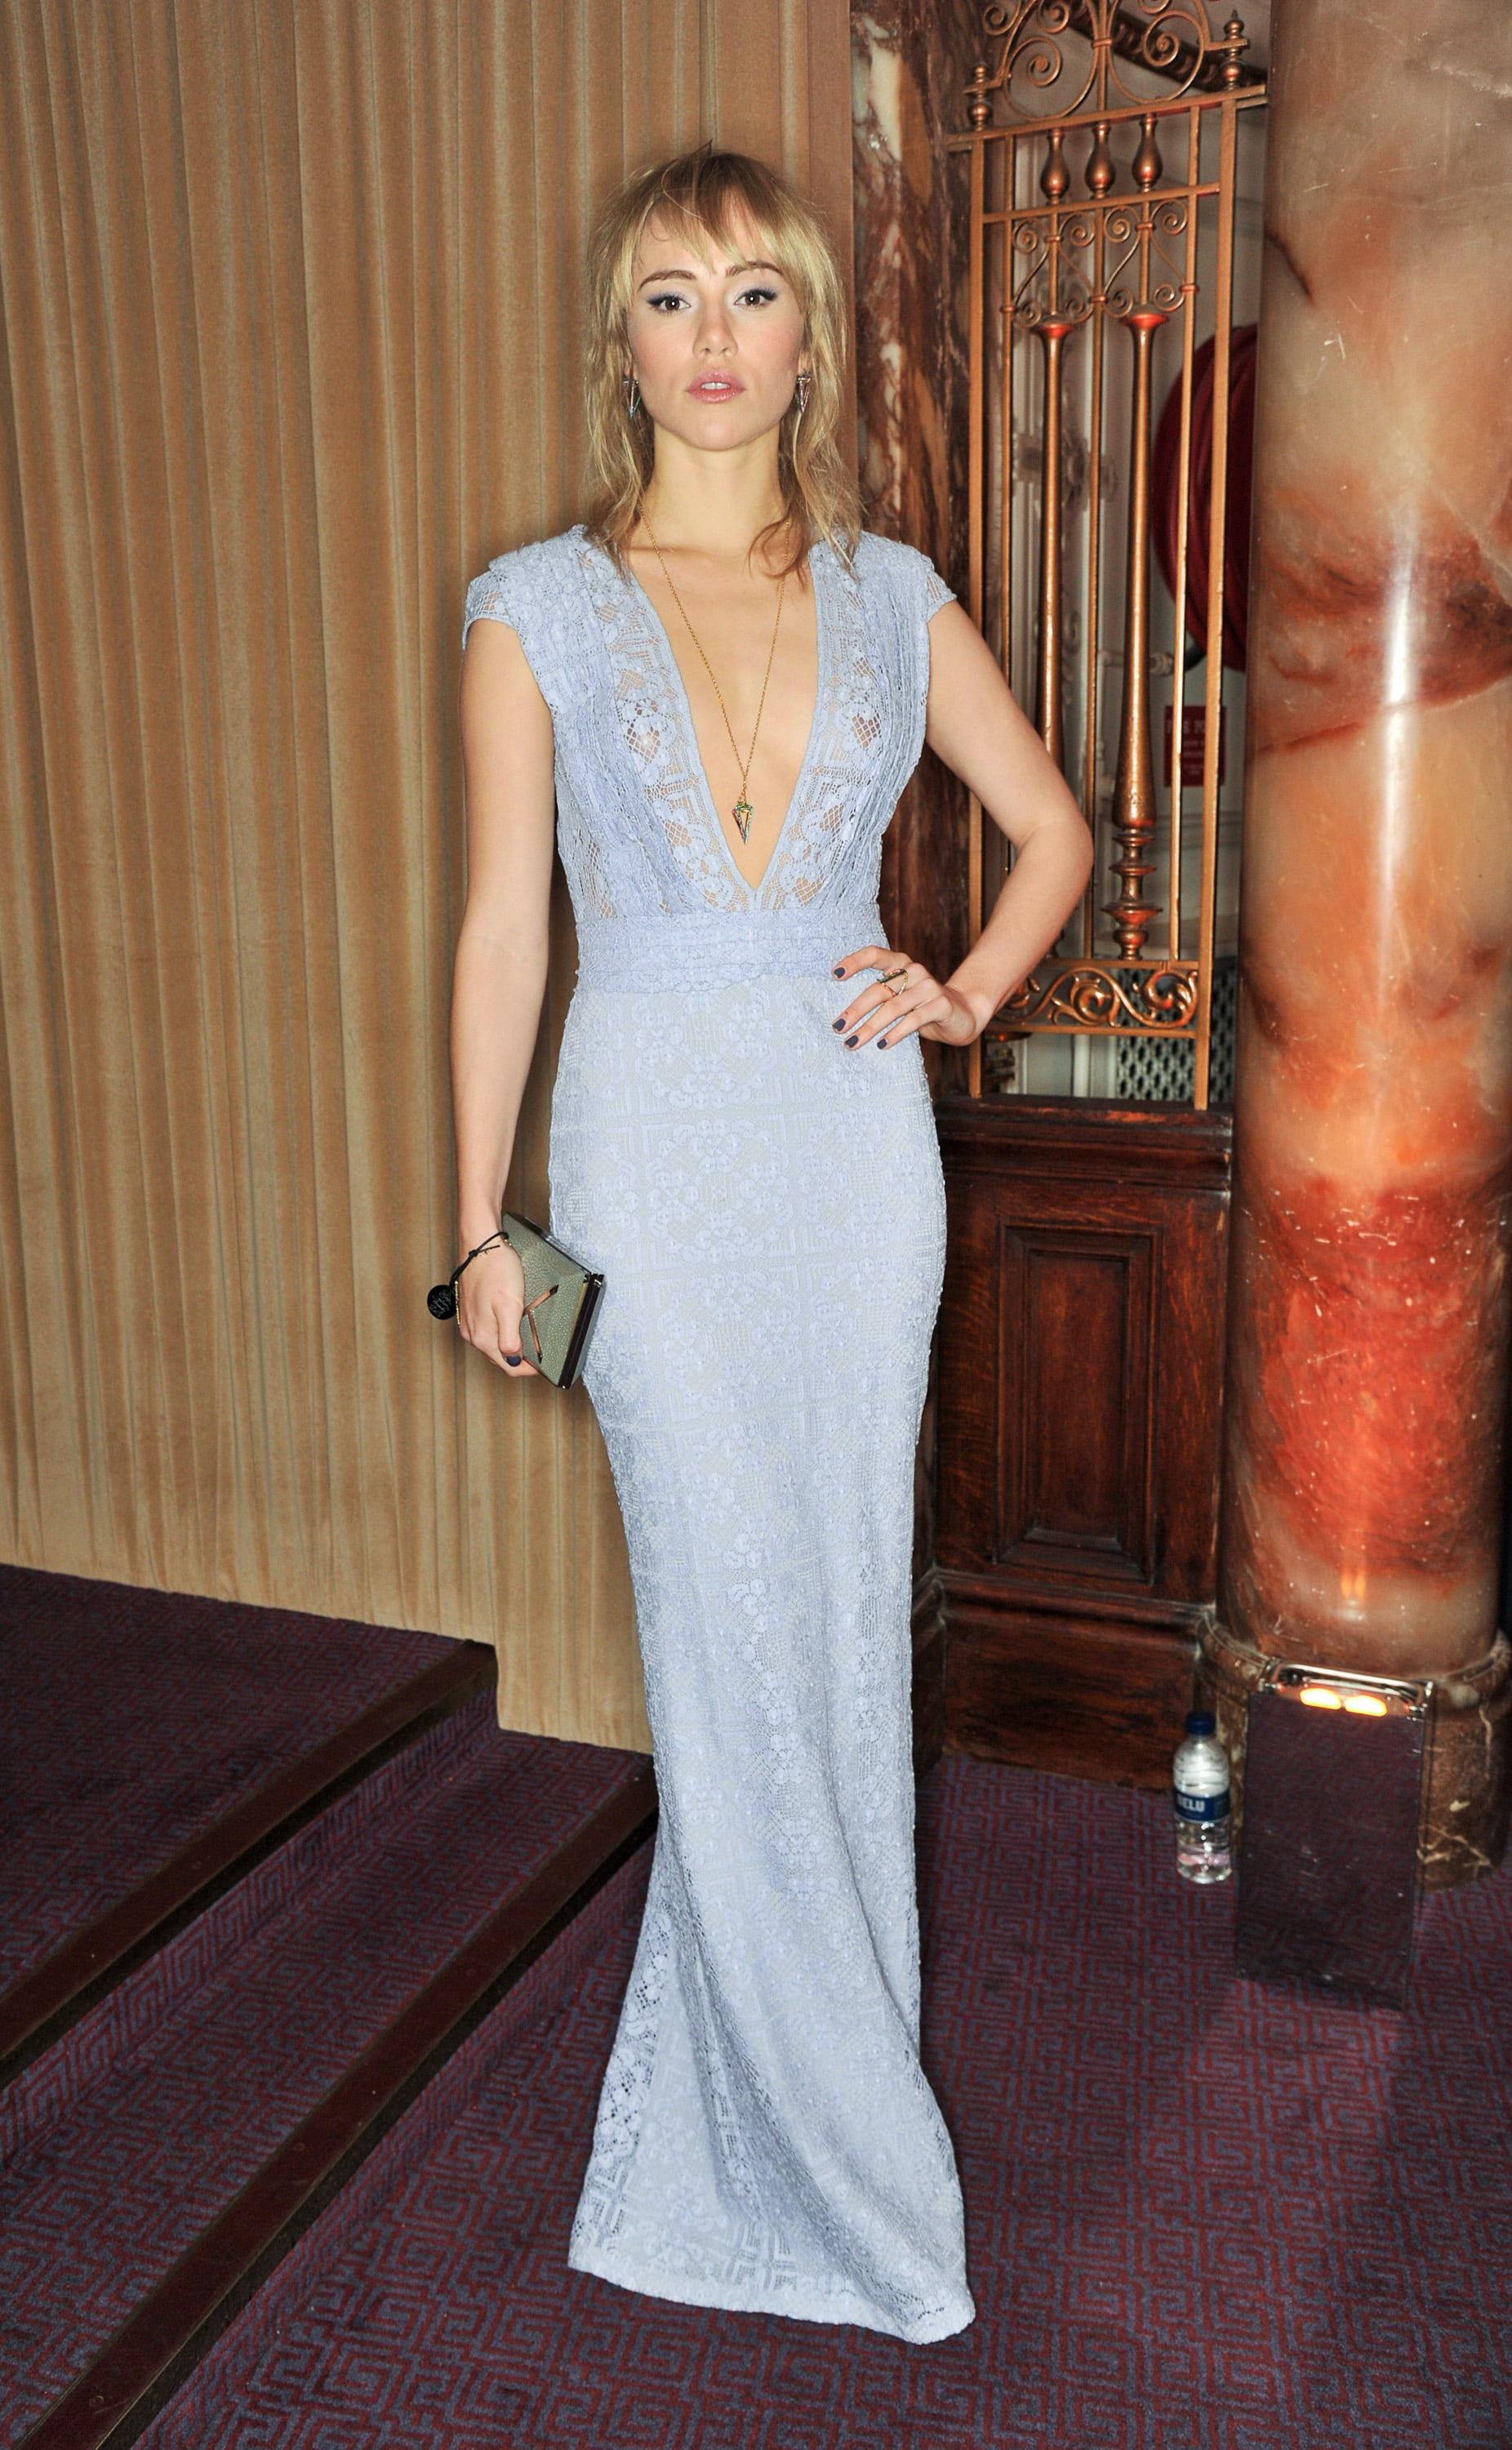 Suki Waterhouse rocked a floor-length dress with a plunging neckline.